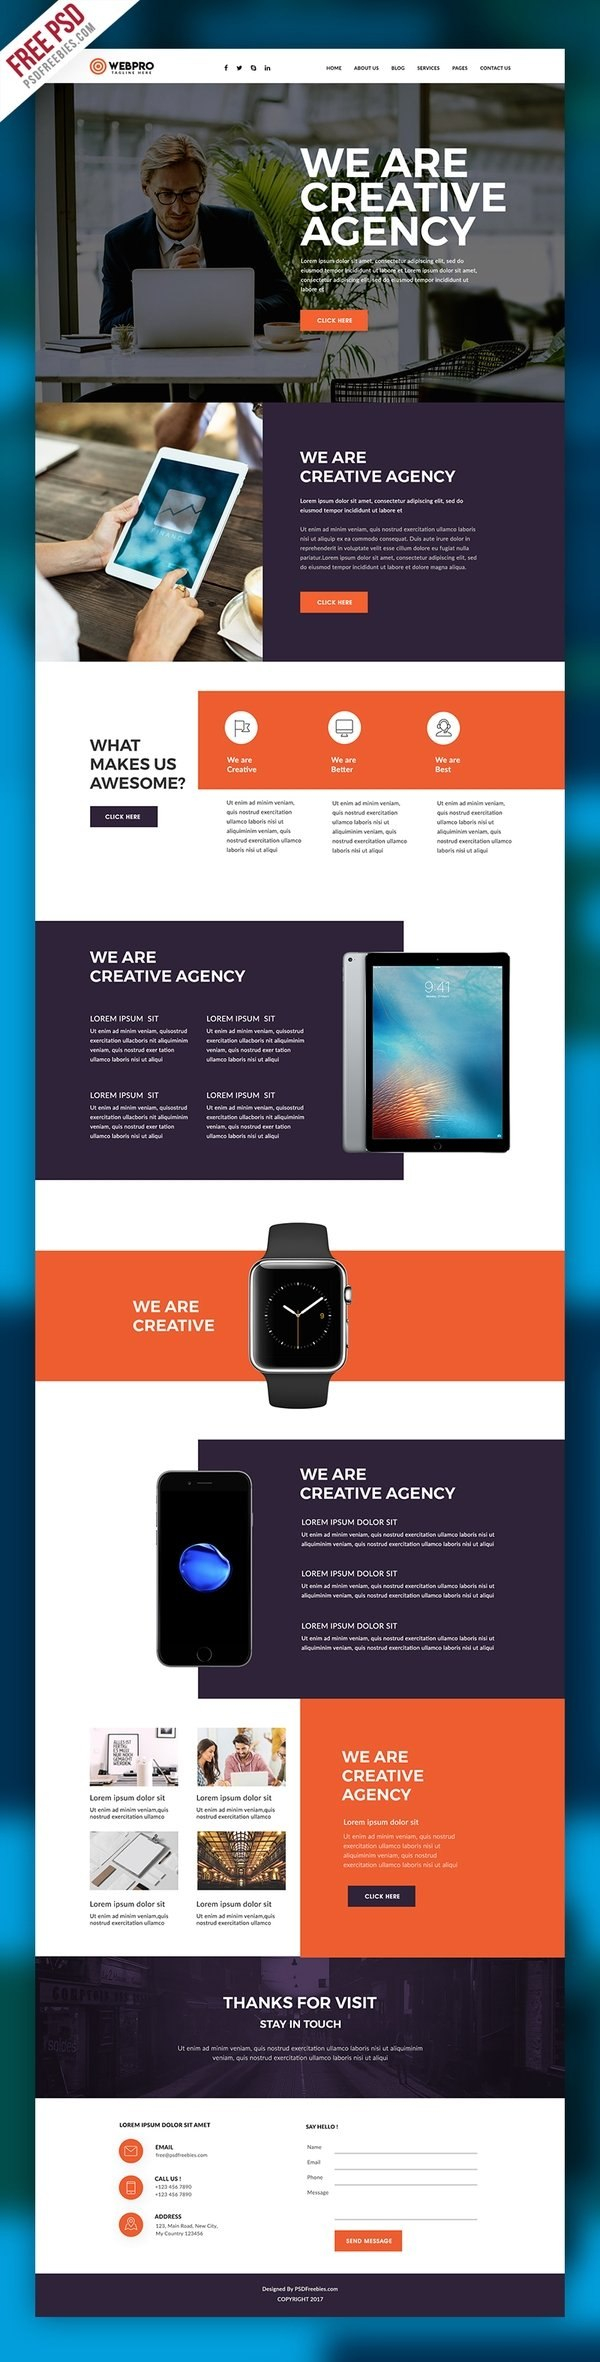 Best Free Psd Website Templates  For Business  Themesity Inside Free Psd Website Templates For Business